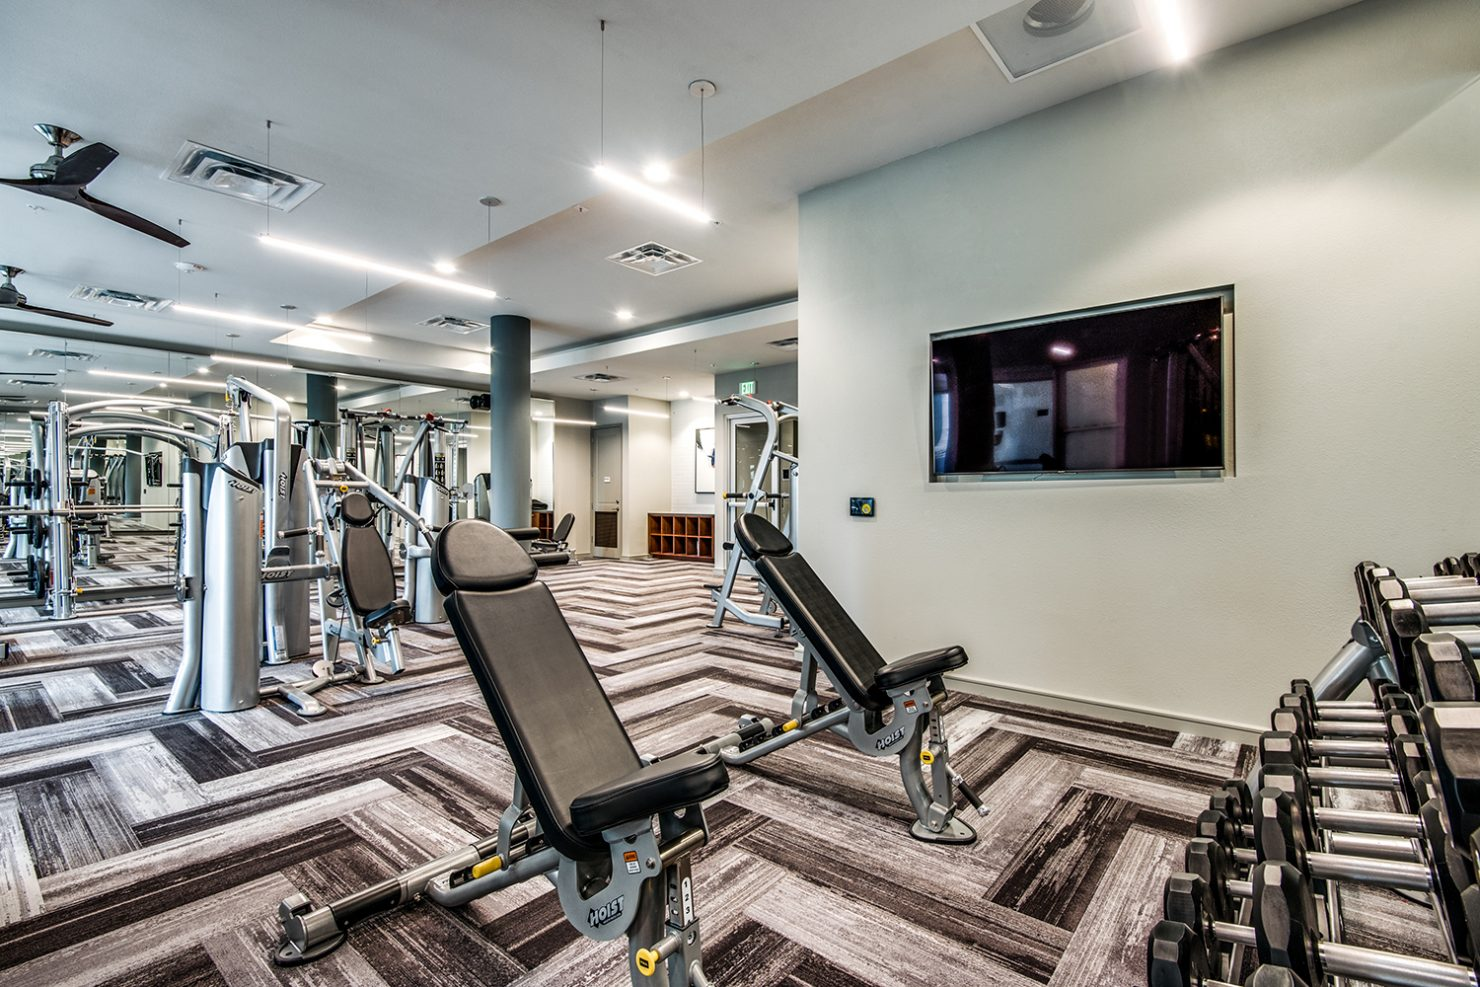 Strength training machines and free weights in community fitness center with wall-mounted TVs